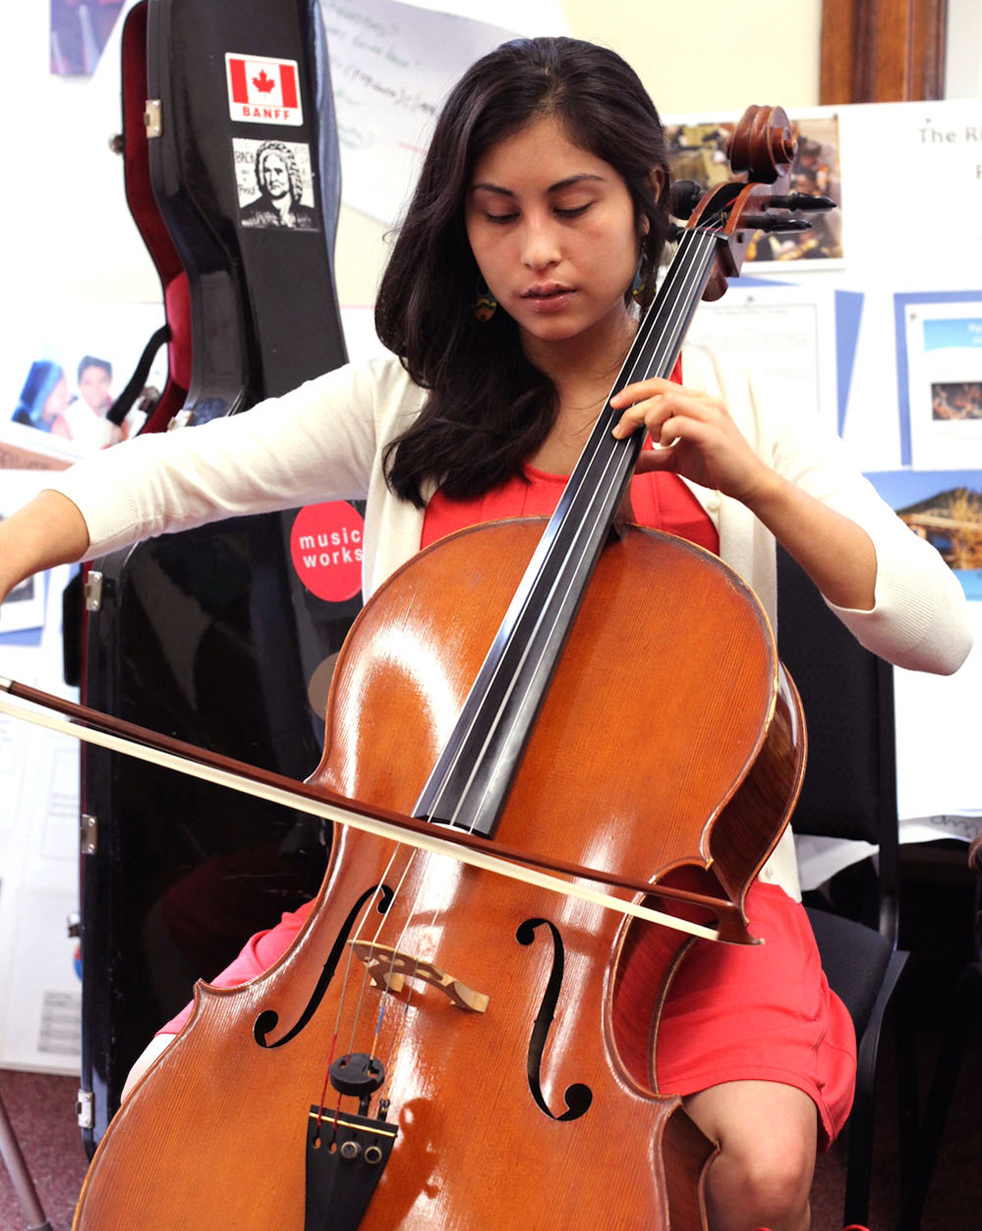 Andrea Landin doesn't just play beautiful music. A graduate of the Sistema Fellows US Program, she got the training she needed to teach children how music can change communities. Photo: Natasha Scripture